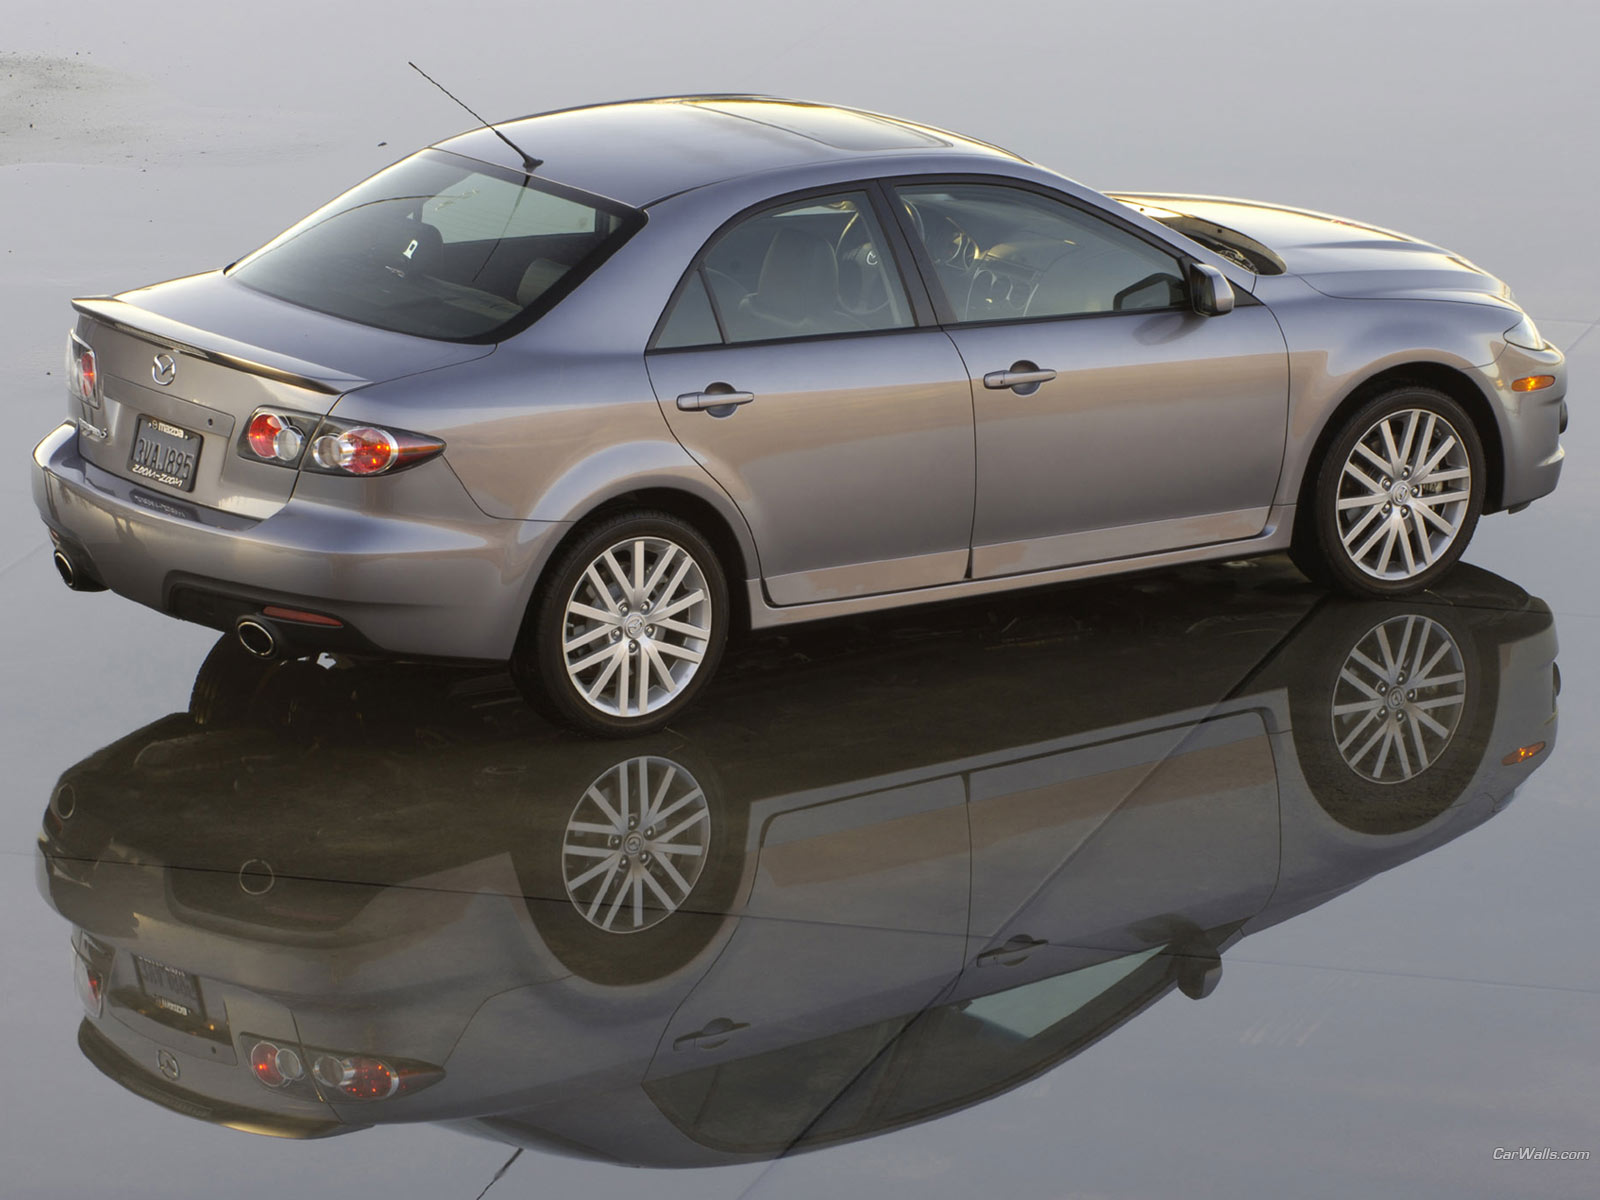 Mazda 626 2010 Review Amazing Pictures And Images Look At The Car